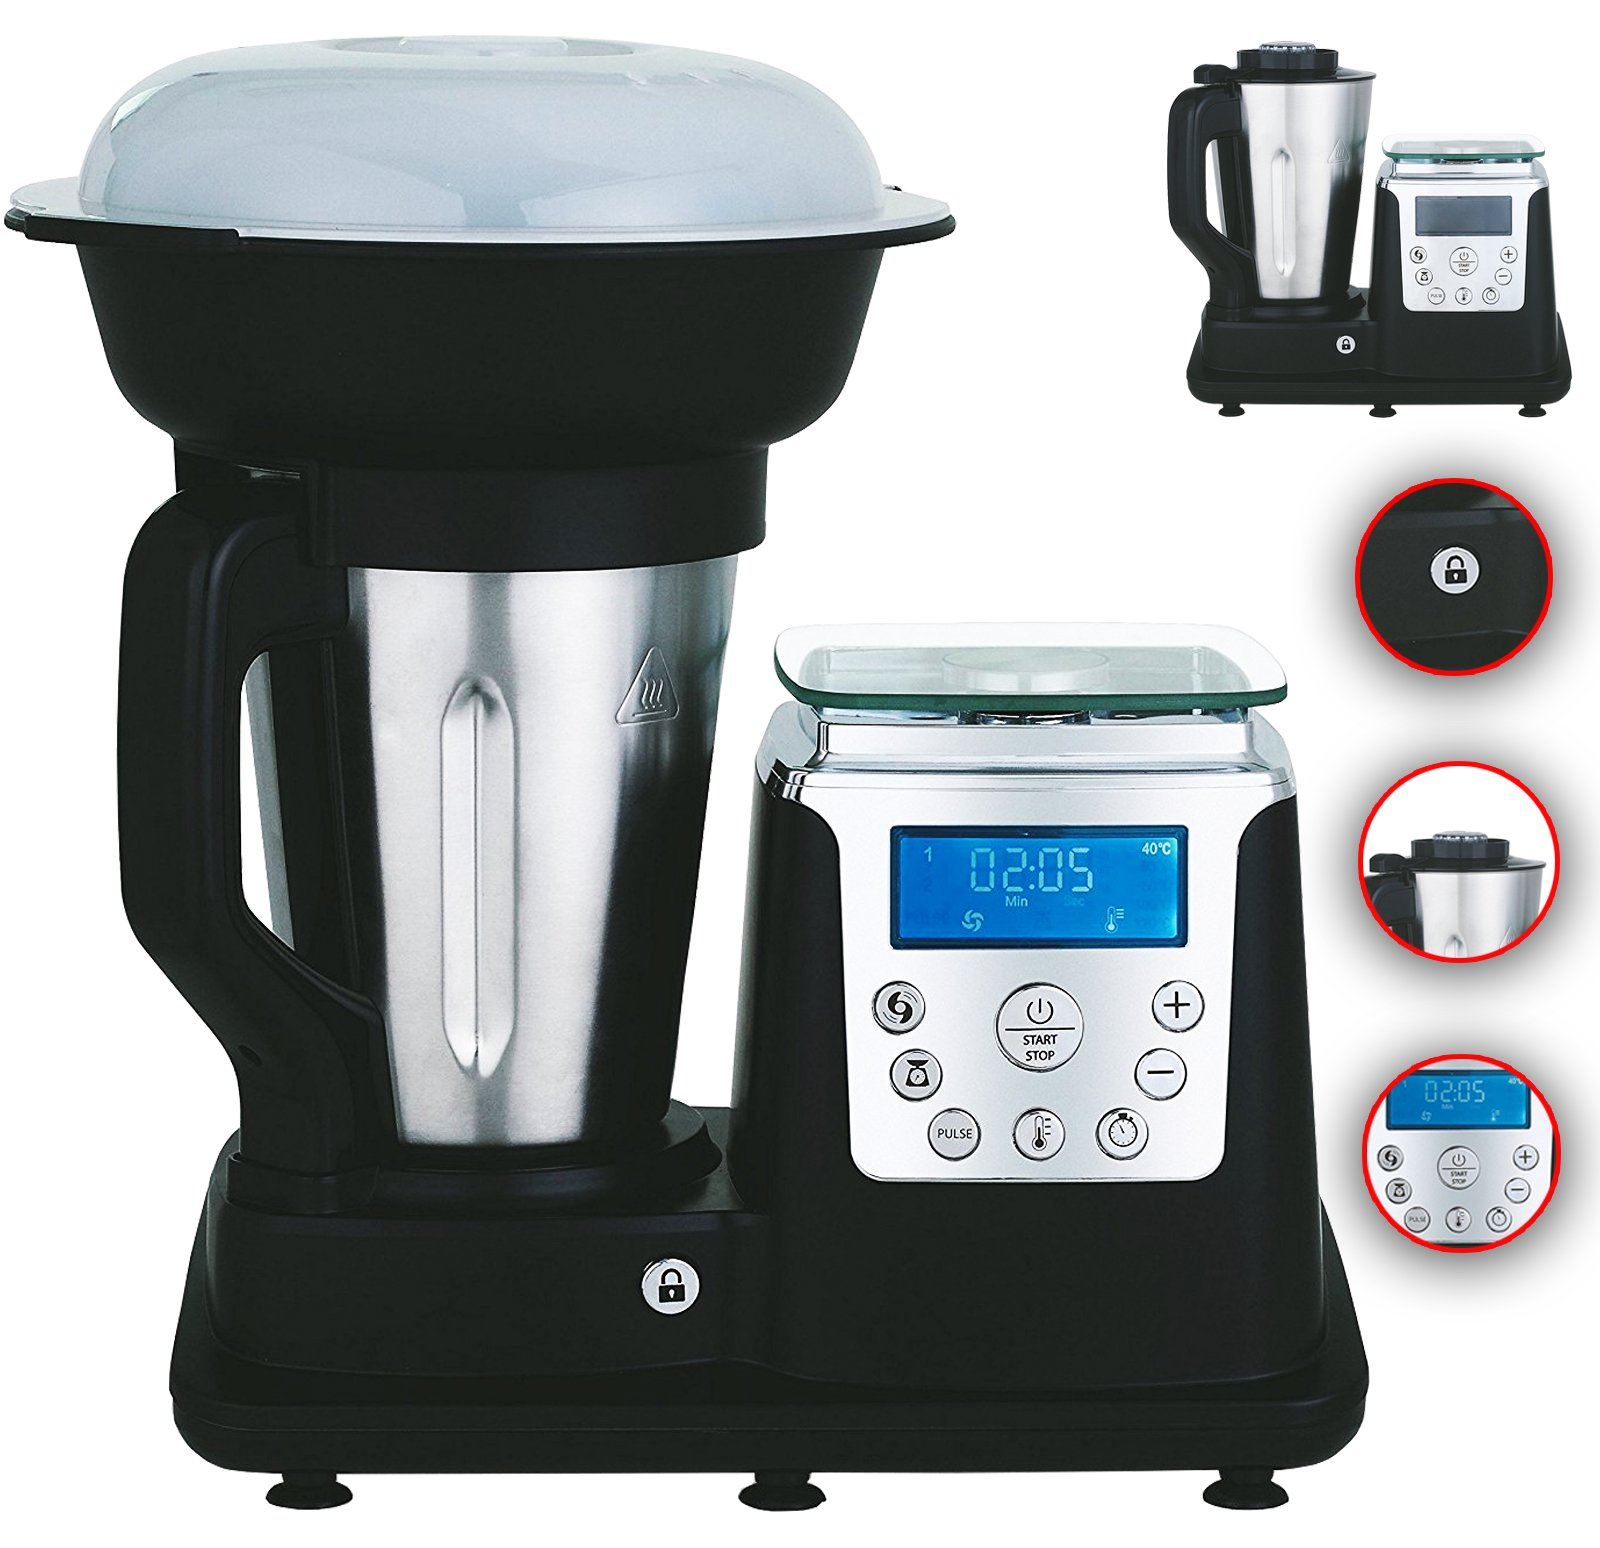 10-in-1-Thermo-Multikocher-Kchenmaschine-mit-KochfunktionTemperatur-1350-Watt-17-Liter-Kochen-Mixen-Dampfgaren-Multifunktions-Kchenmaschine-Zerkleiner-Thermo-Koch-Mix-Maschine